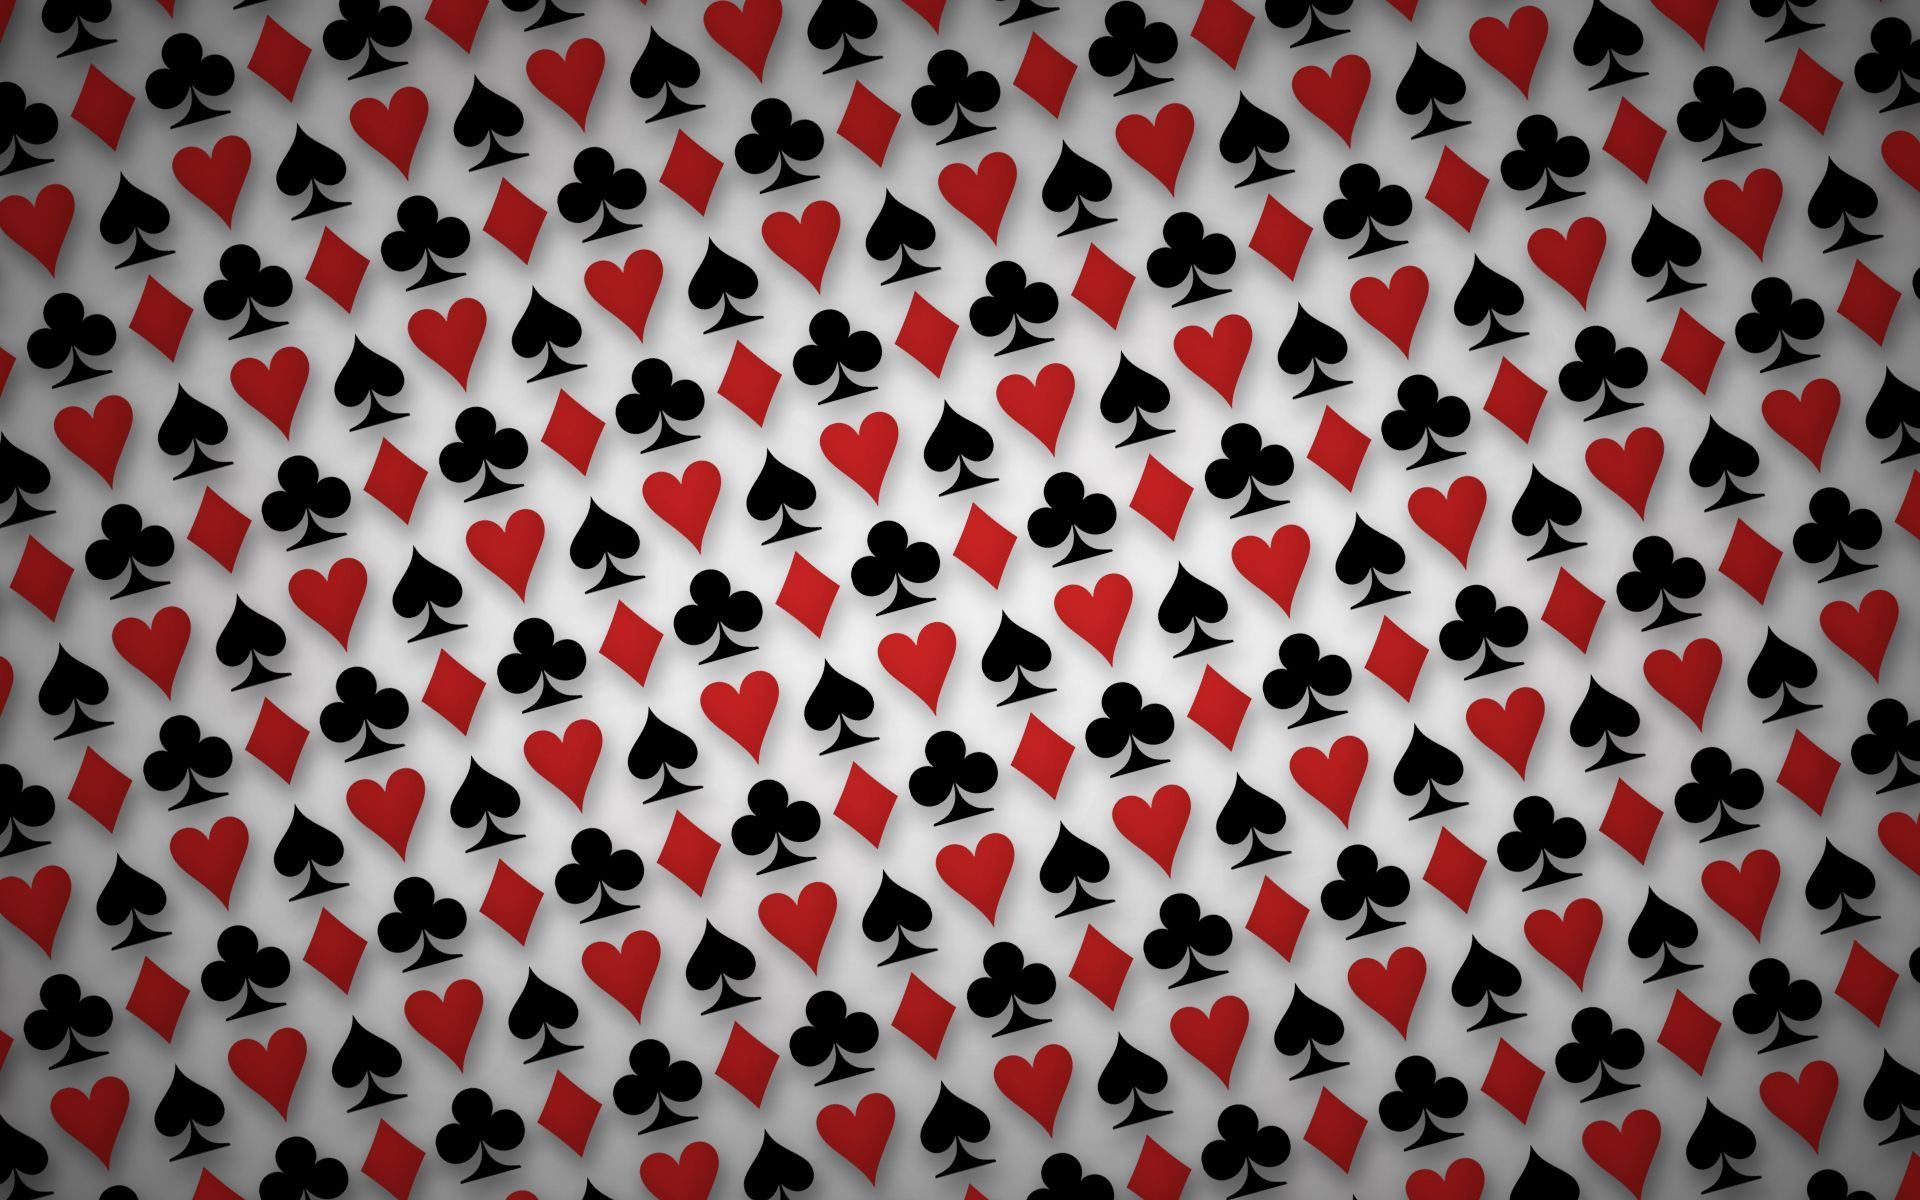 Playing Cards Wallpaper 1920x1080 1920x1200